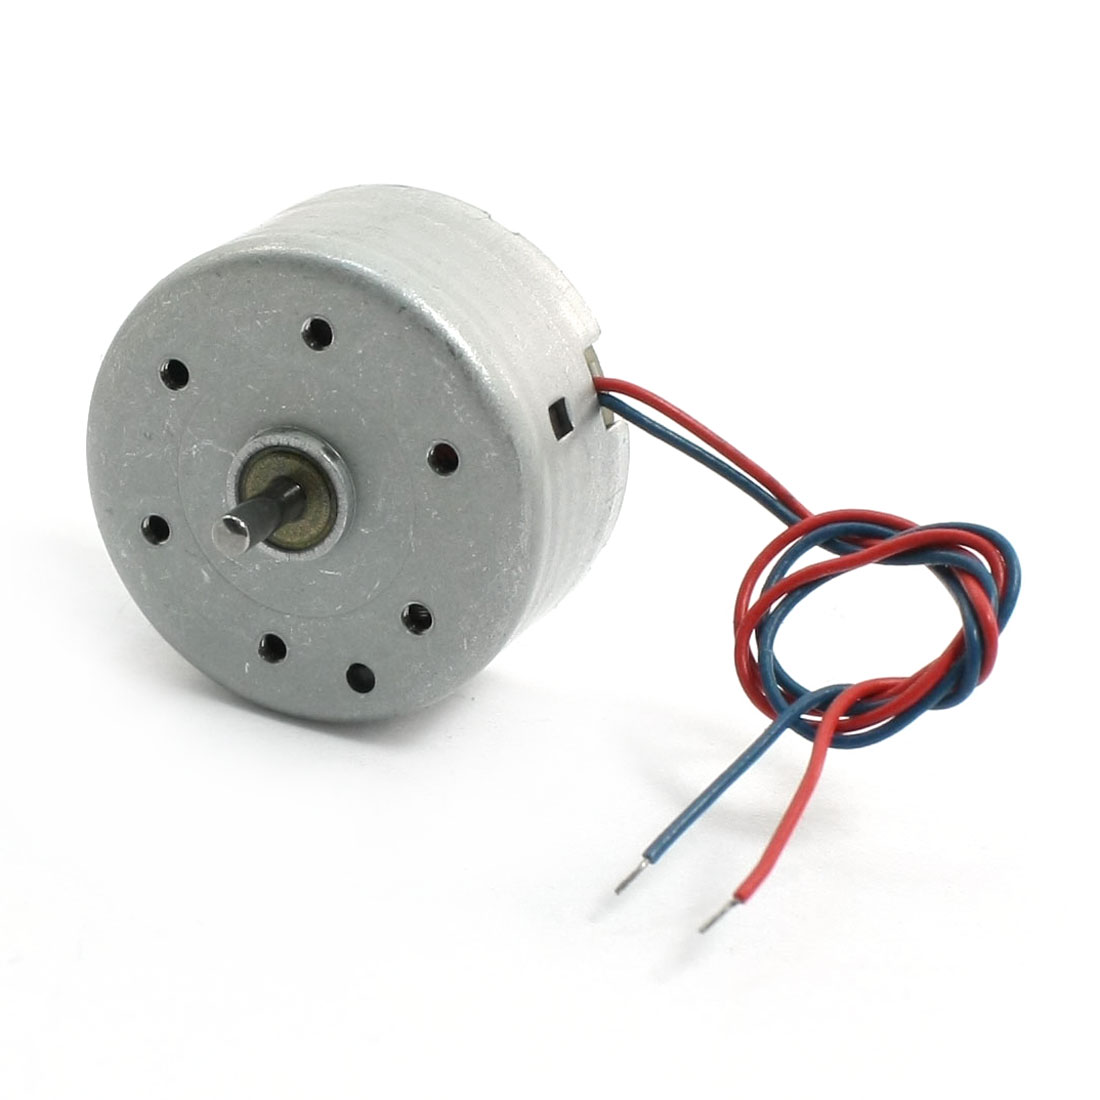 2mm-Shaft-Dia-2-Wired-Connector-Micro-Vibration-Motor-DC-6V-4000RPM